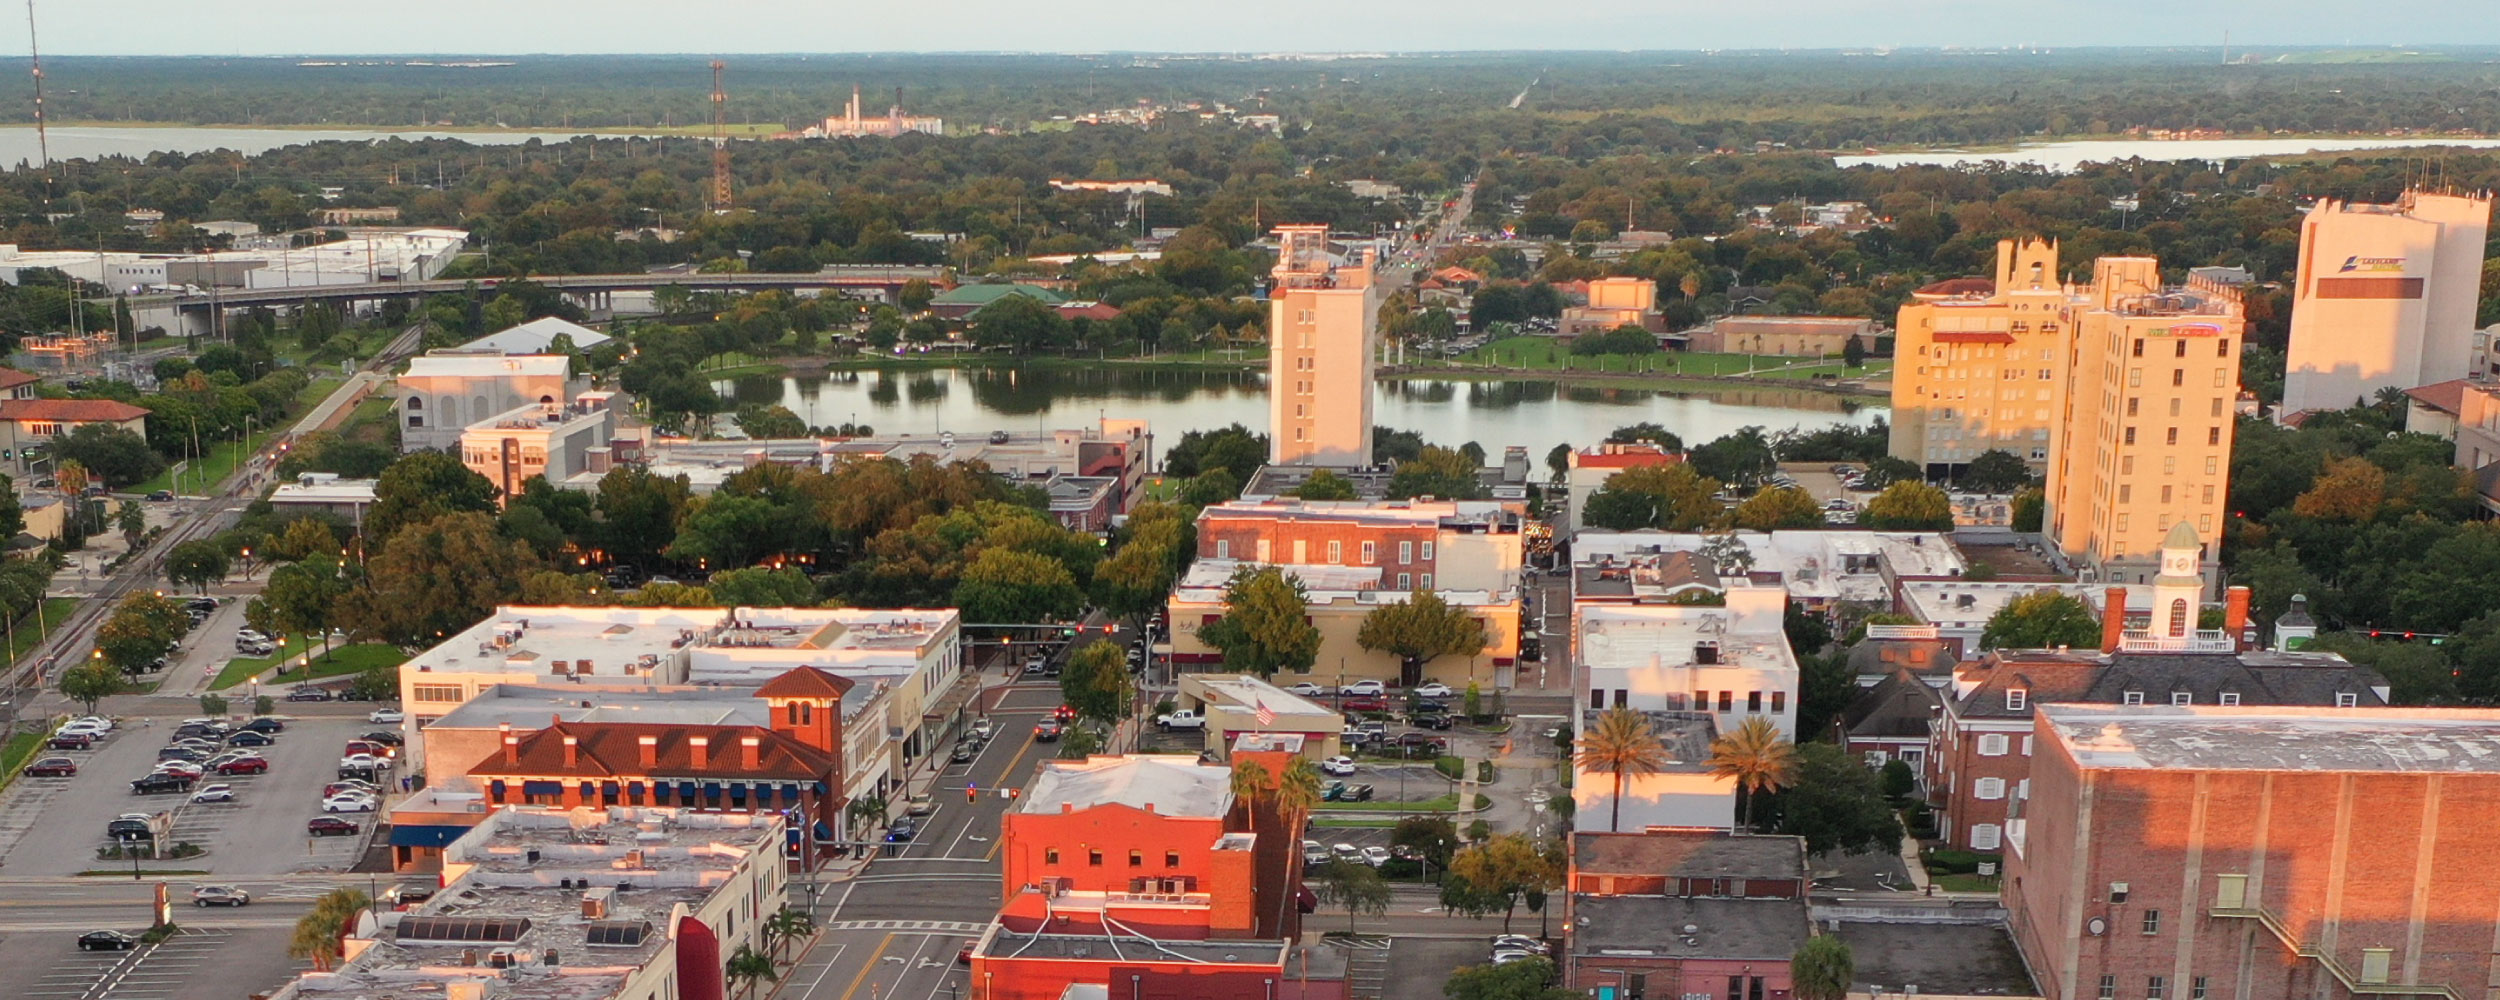 Aerial photo of downtown Lakeland, Florida